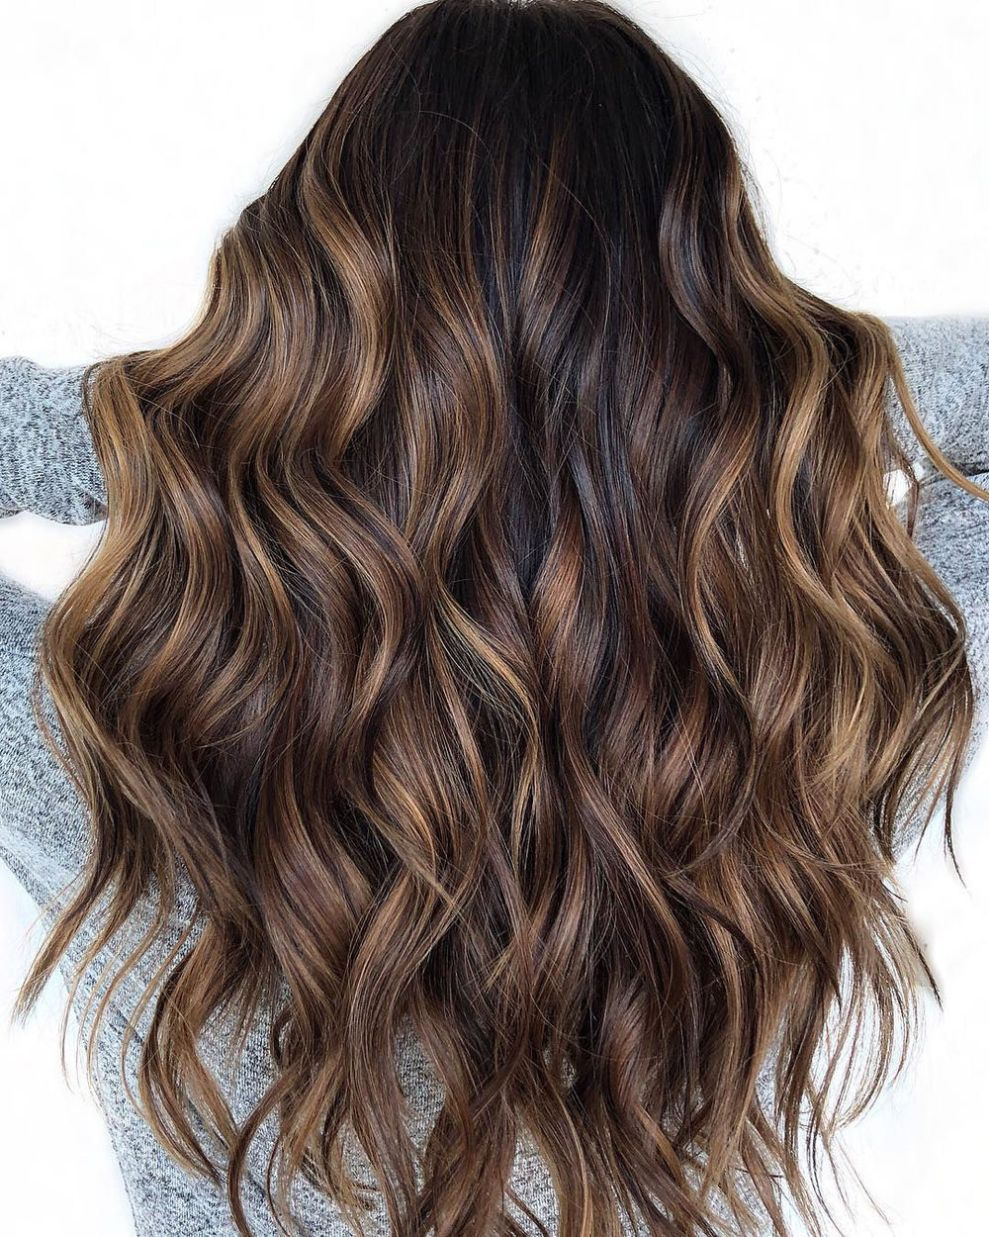 70 Flattering Balayage Hair Color Ideas for 2019 in 2019 | Brown n ...